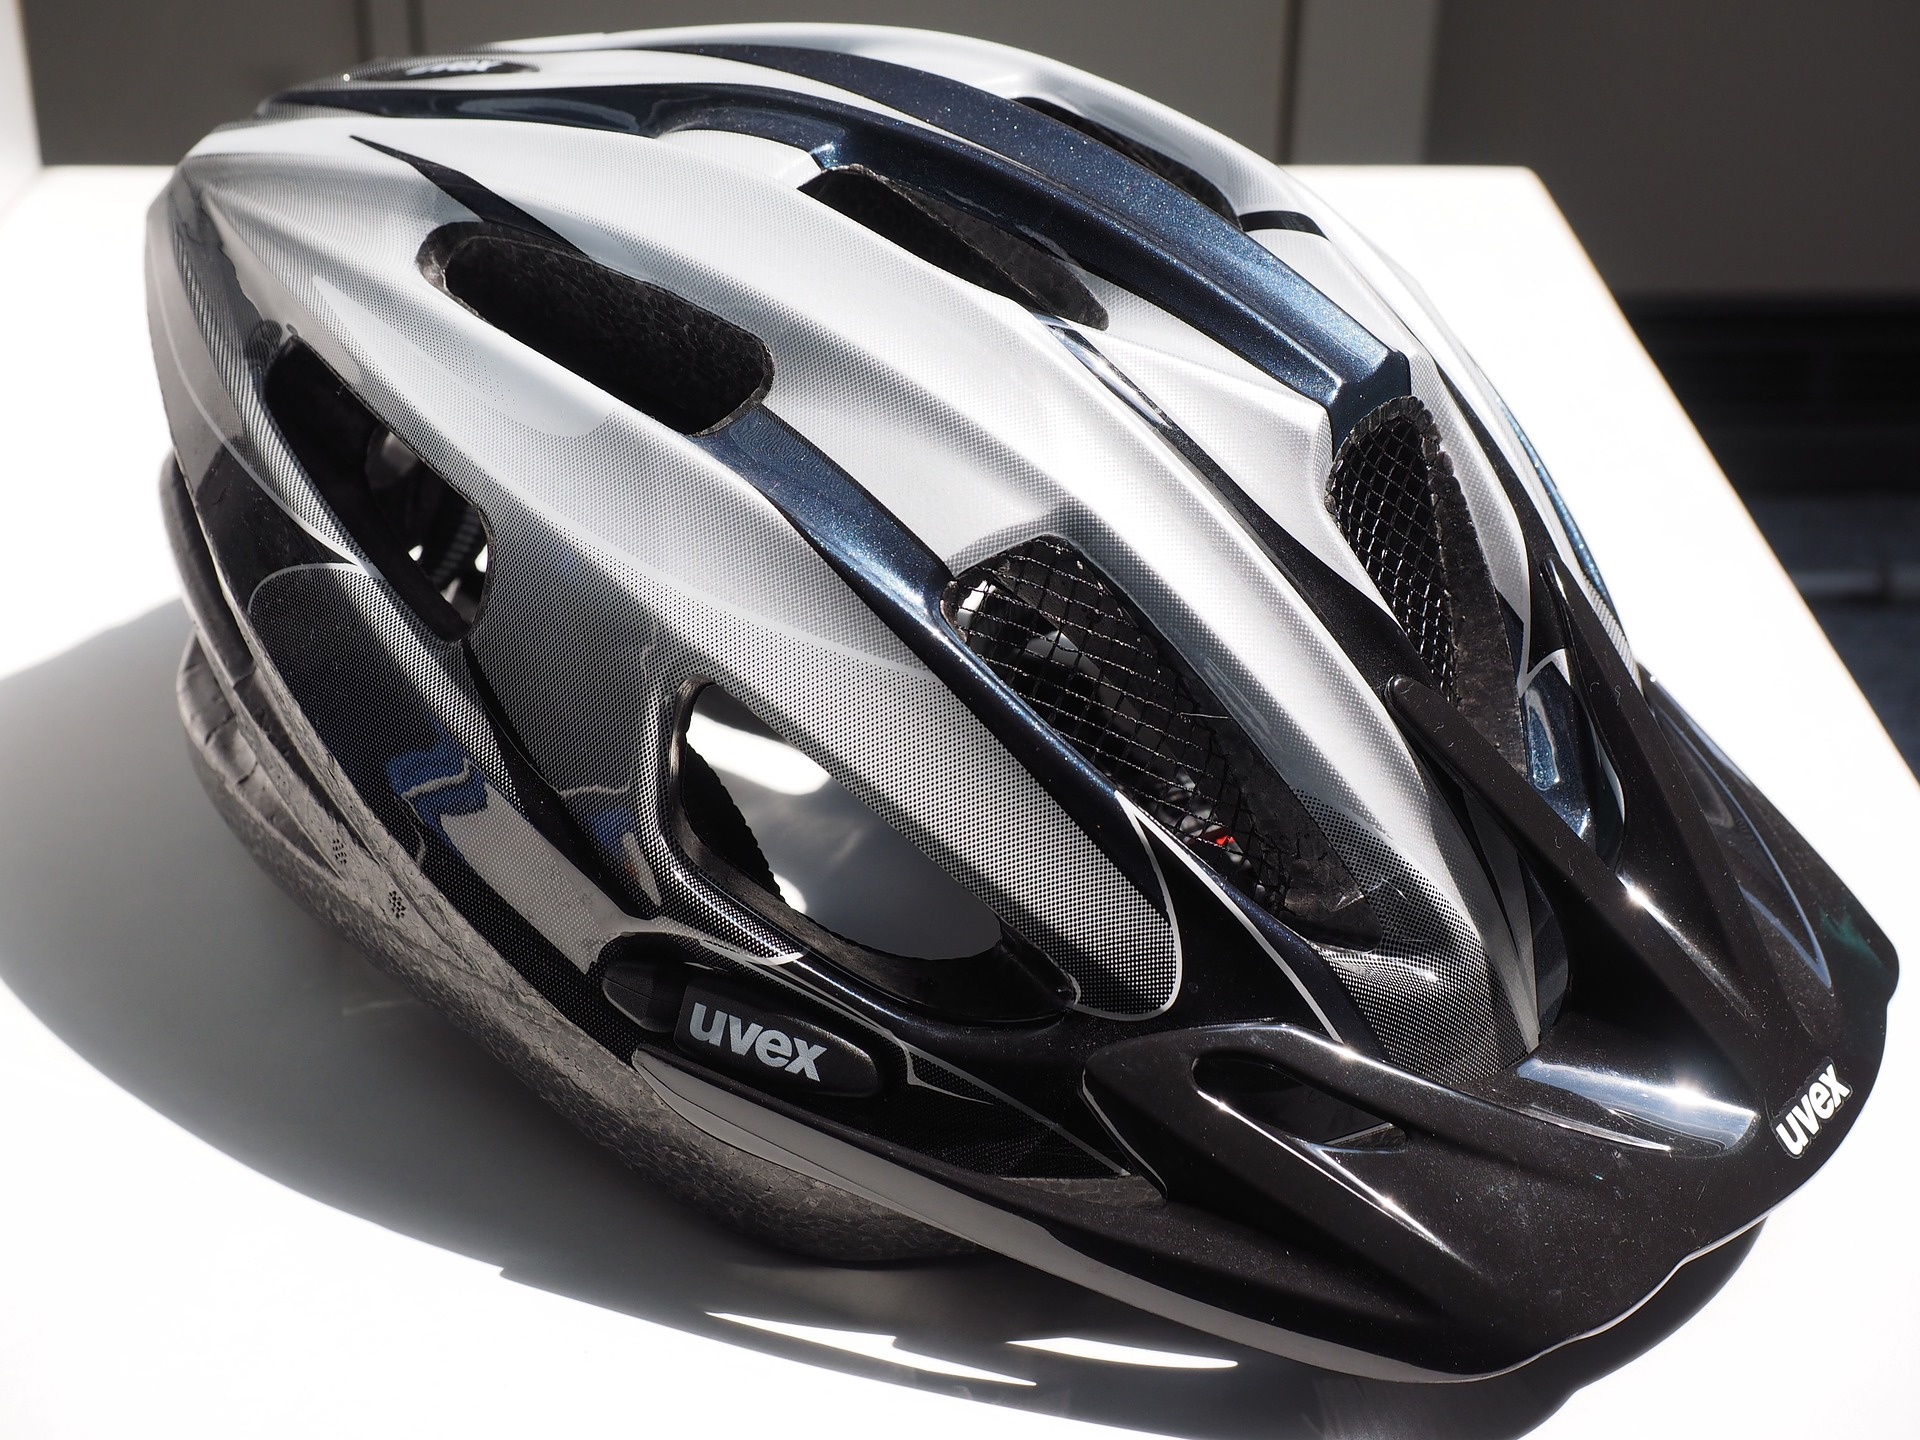 A helmet should be mandatory, while protections like wrist guards, knee pads, and elbow pads are highly-recommended.